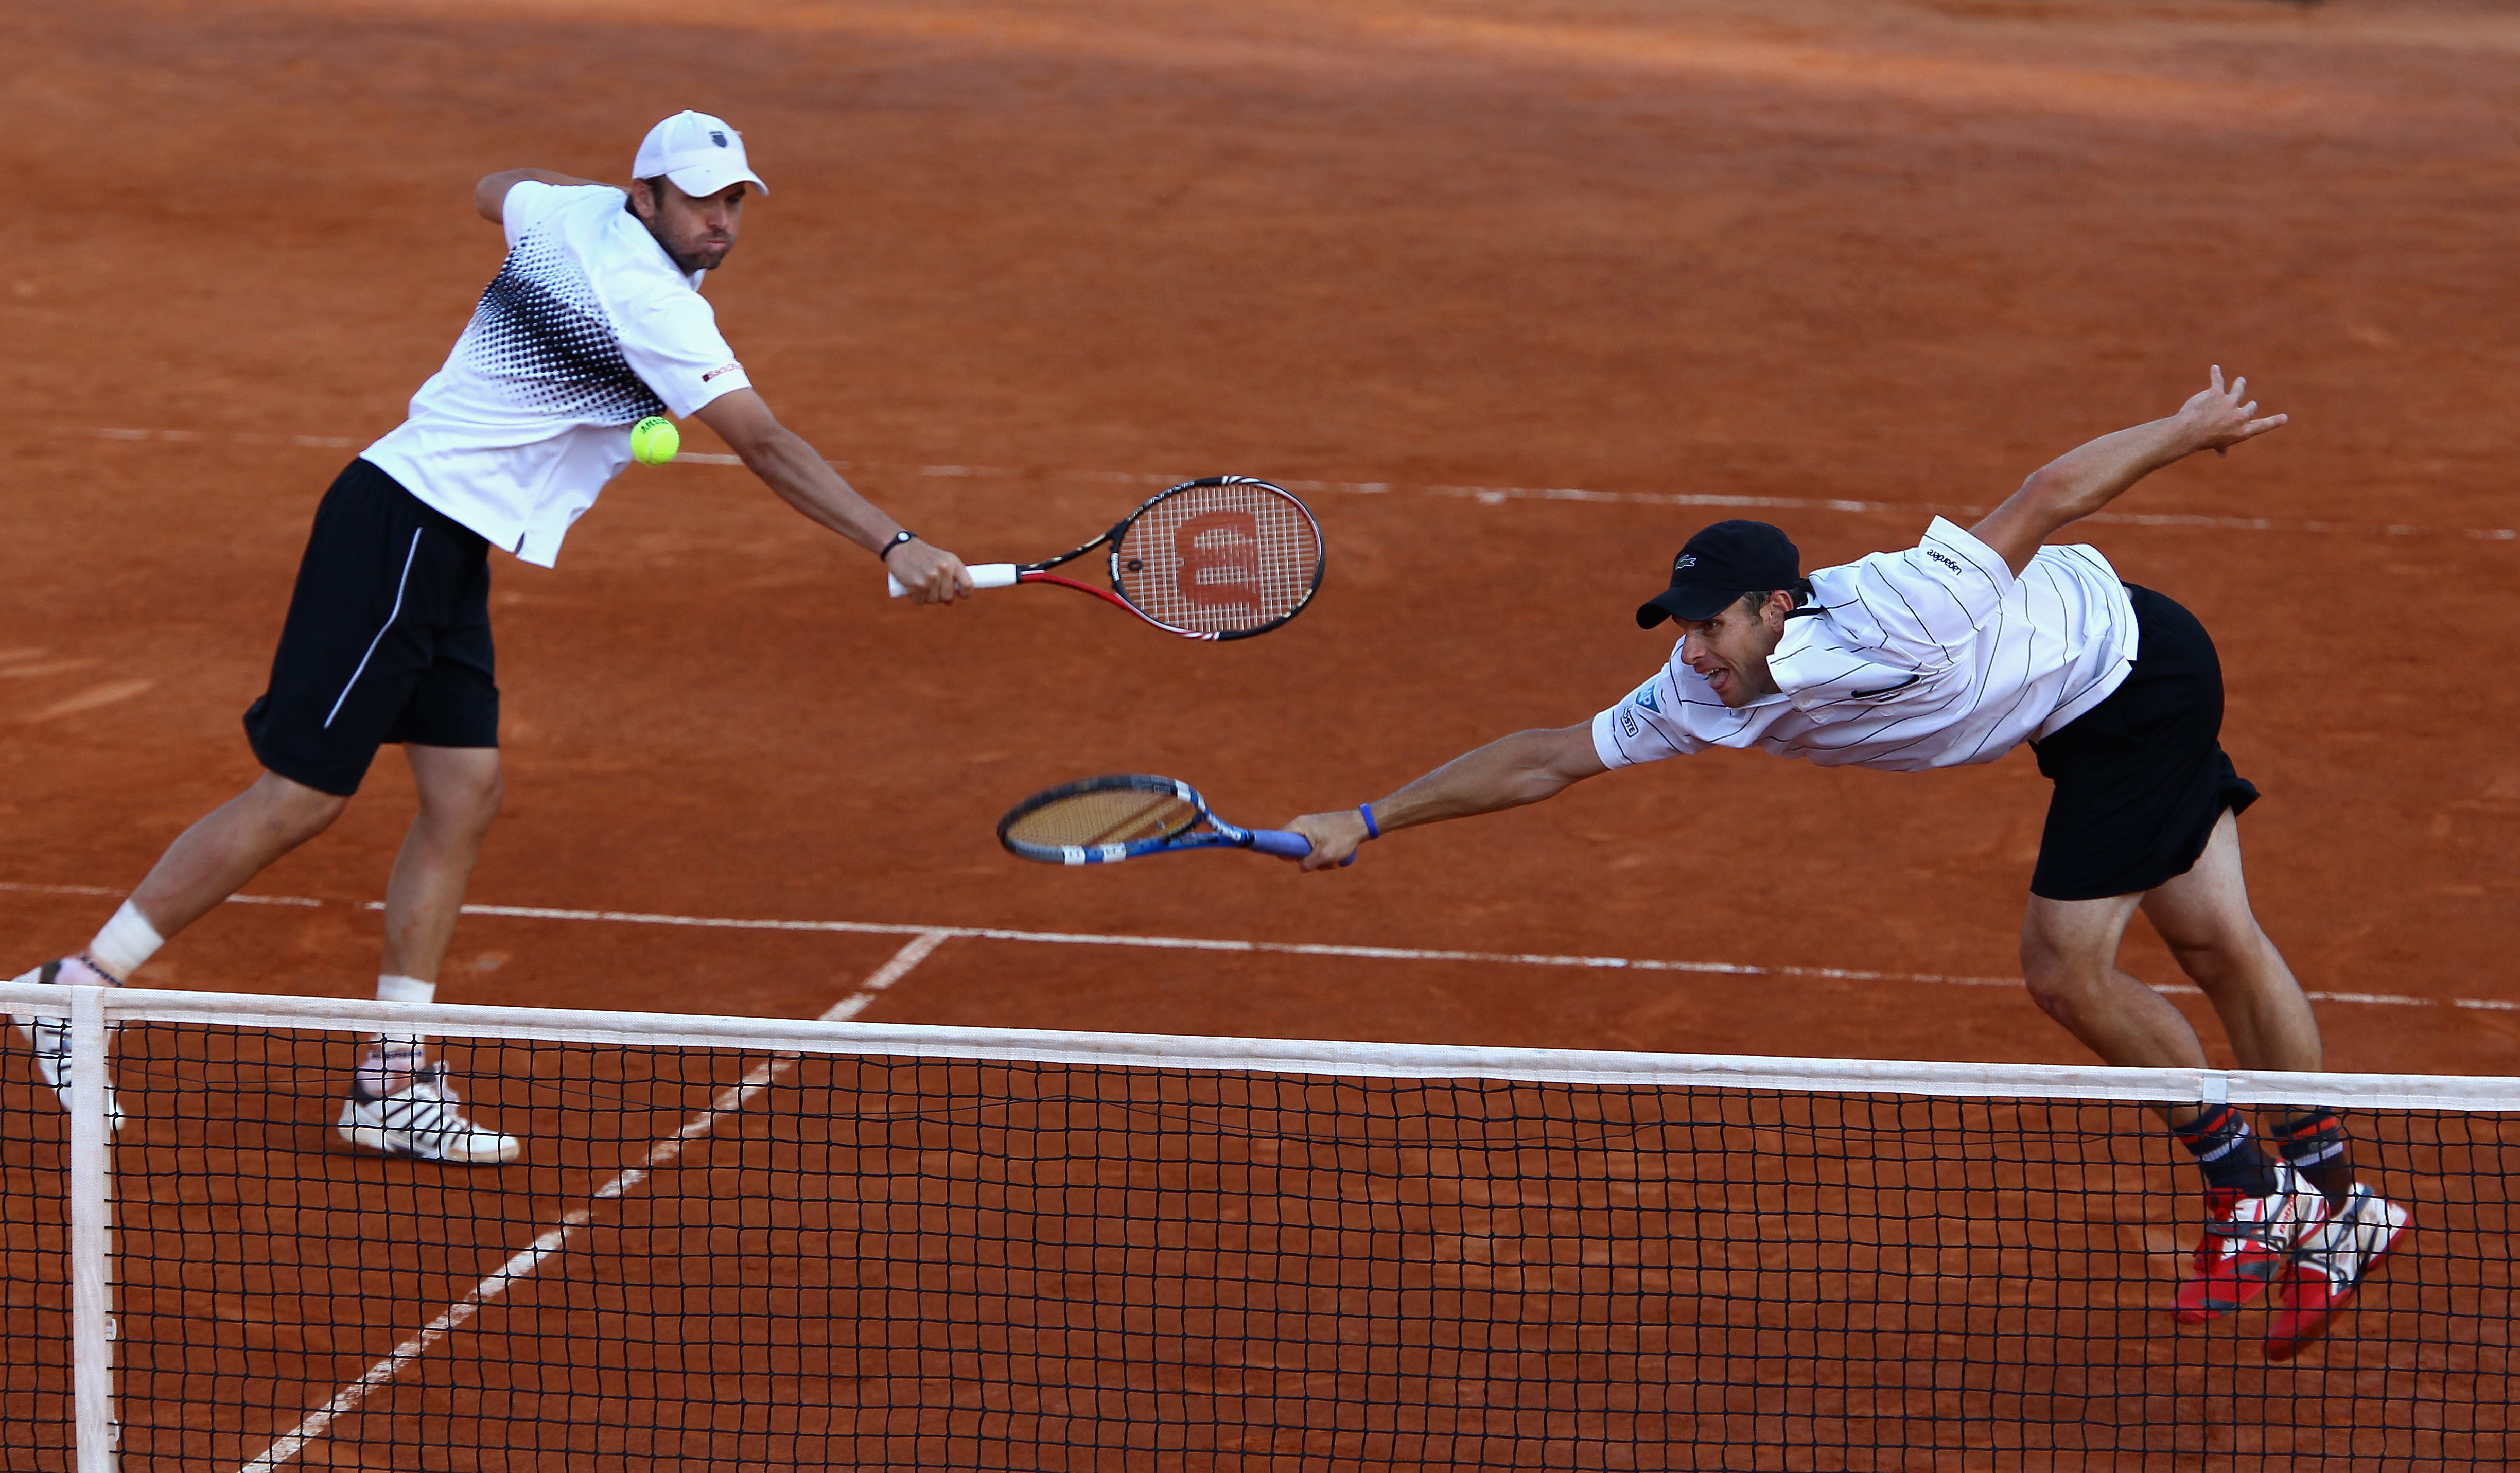 ROME, ITALY - MAY 14:  Andy Roddick and Mardy Fish of the USA in action during their doubles semi final match against Carlos Berlocq of Argentina and Jarkko Nieminen of Finland during day seven of the Internazoinali BNL D'Italia at the Foro Italico Tennis